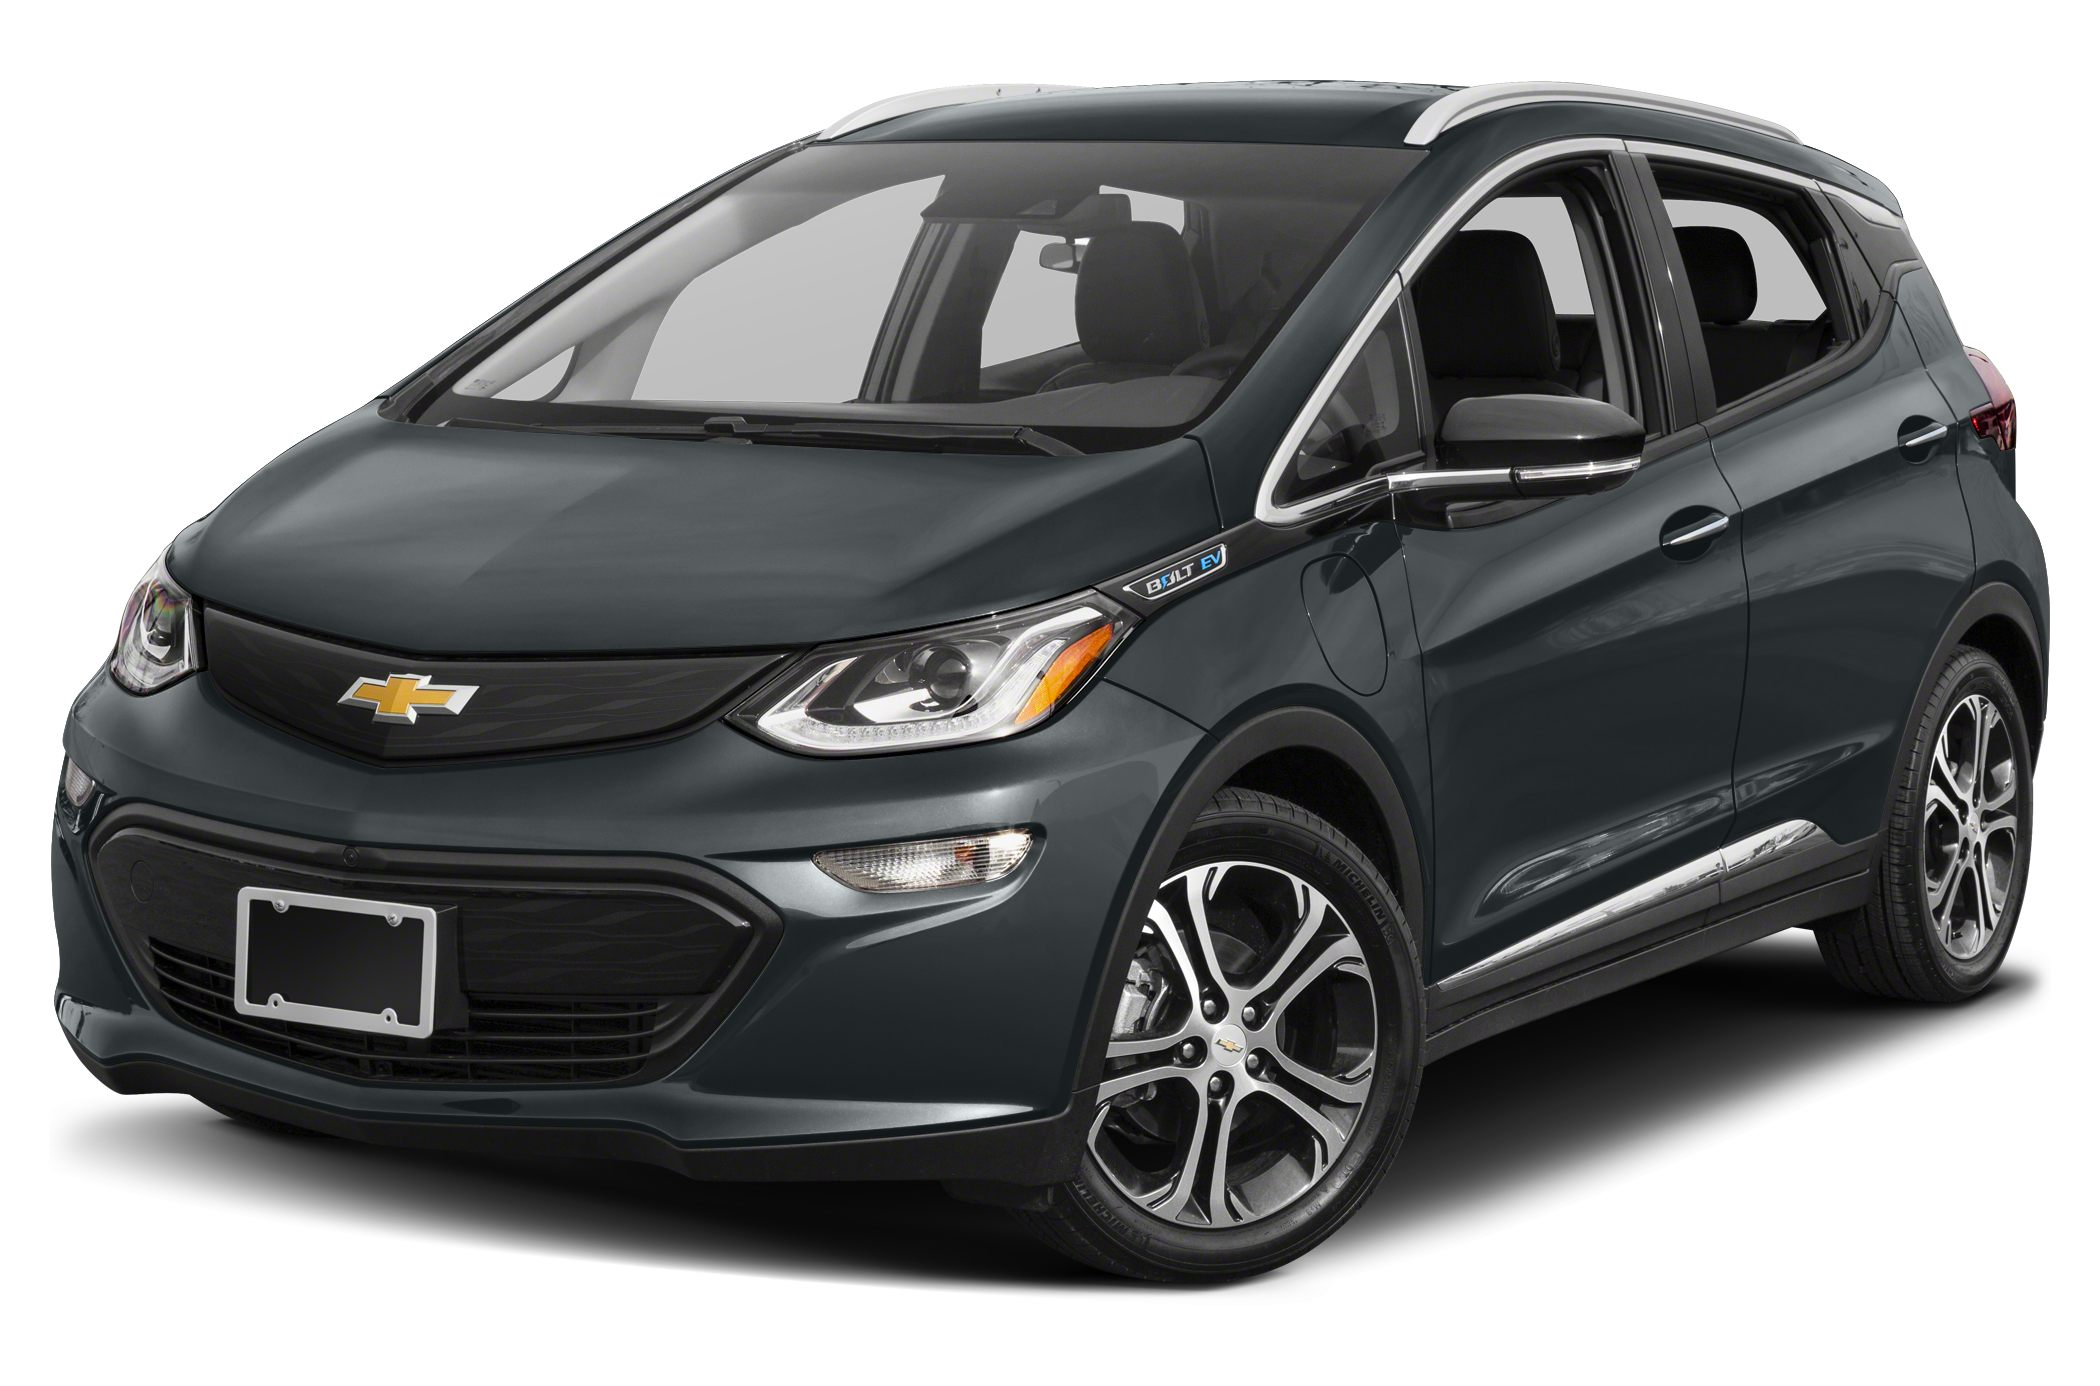 2017 Chevrolet Bolt Ev Deals Prices Incentives Amp Leases Overview Carsdirect